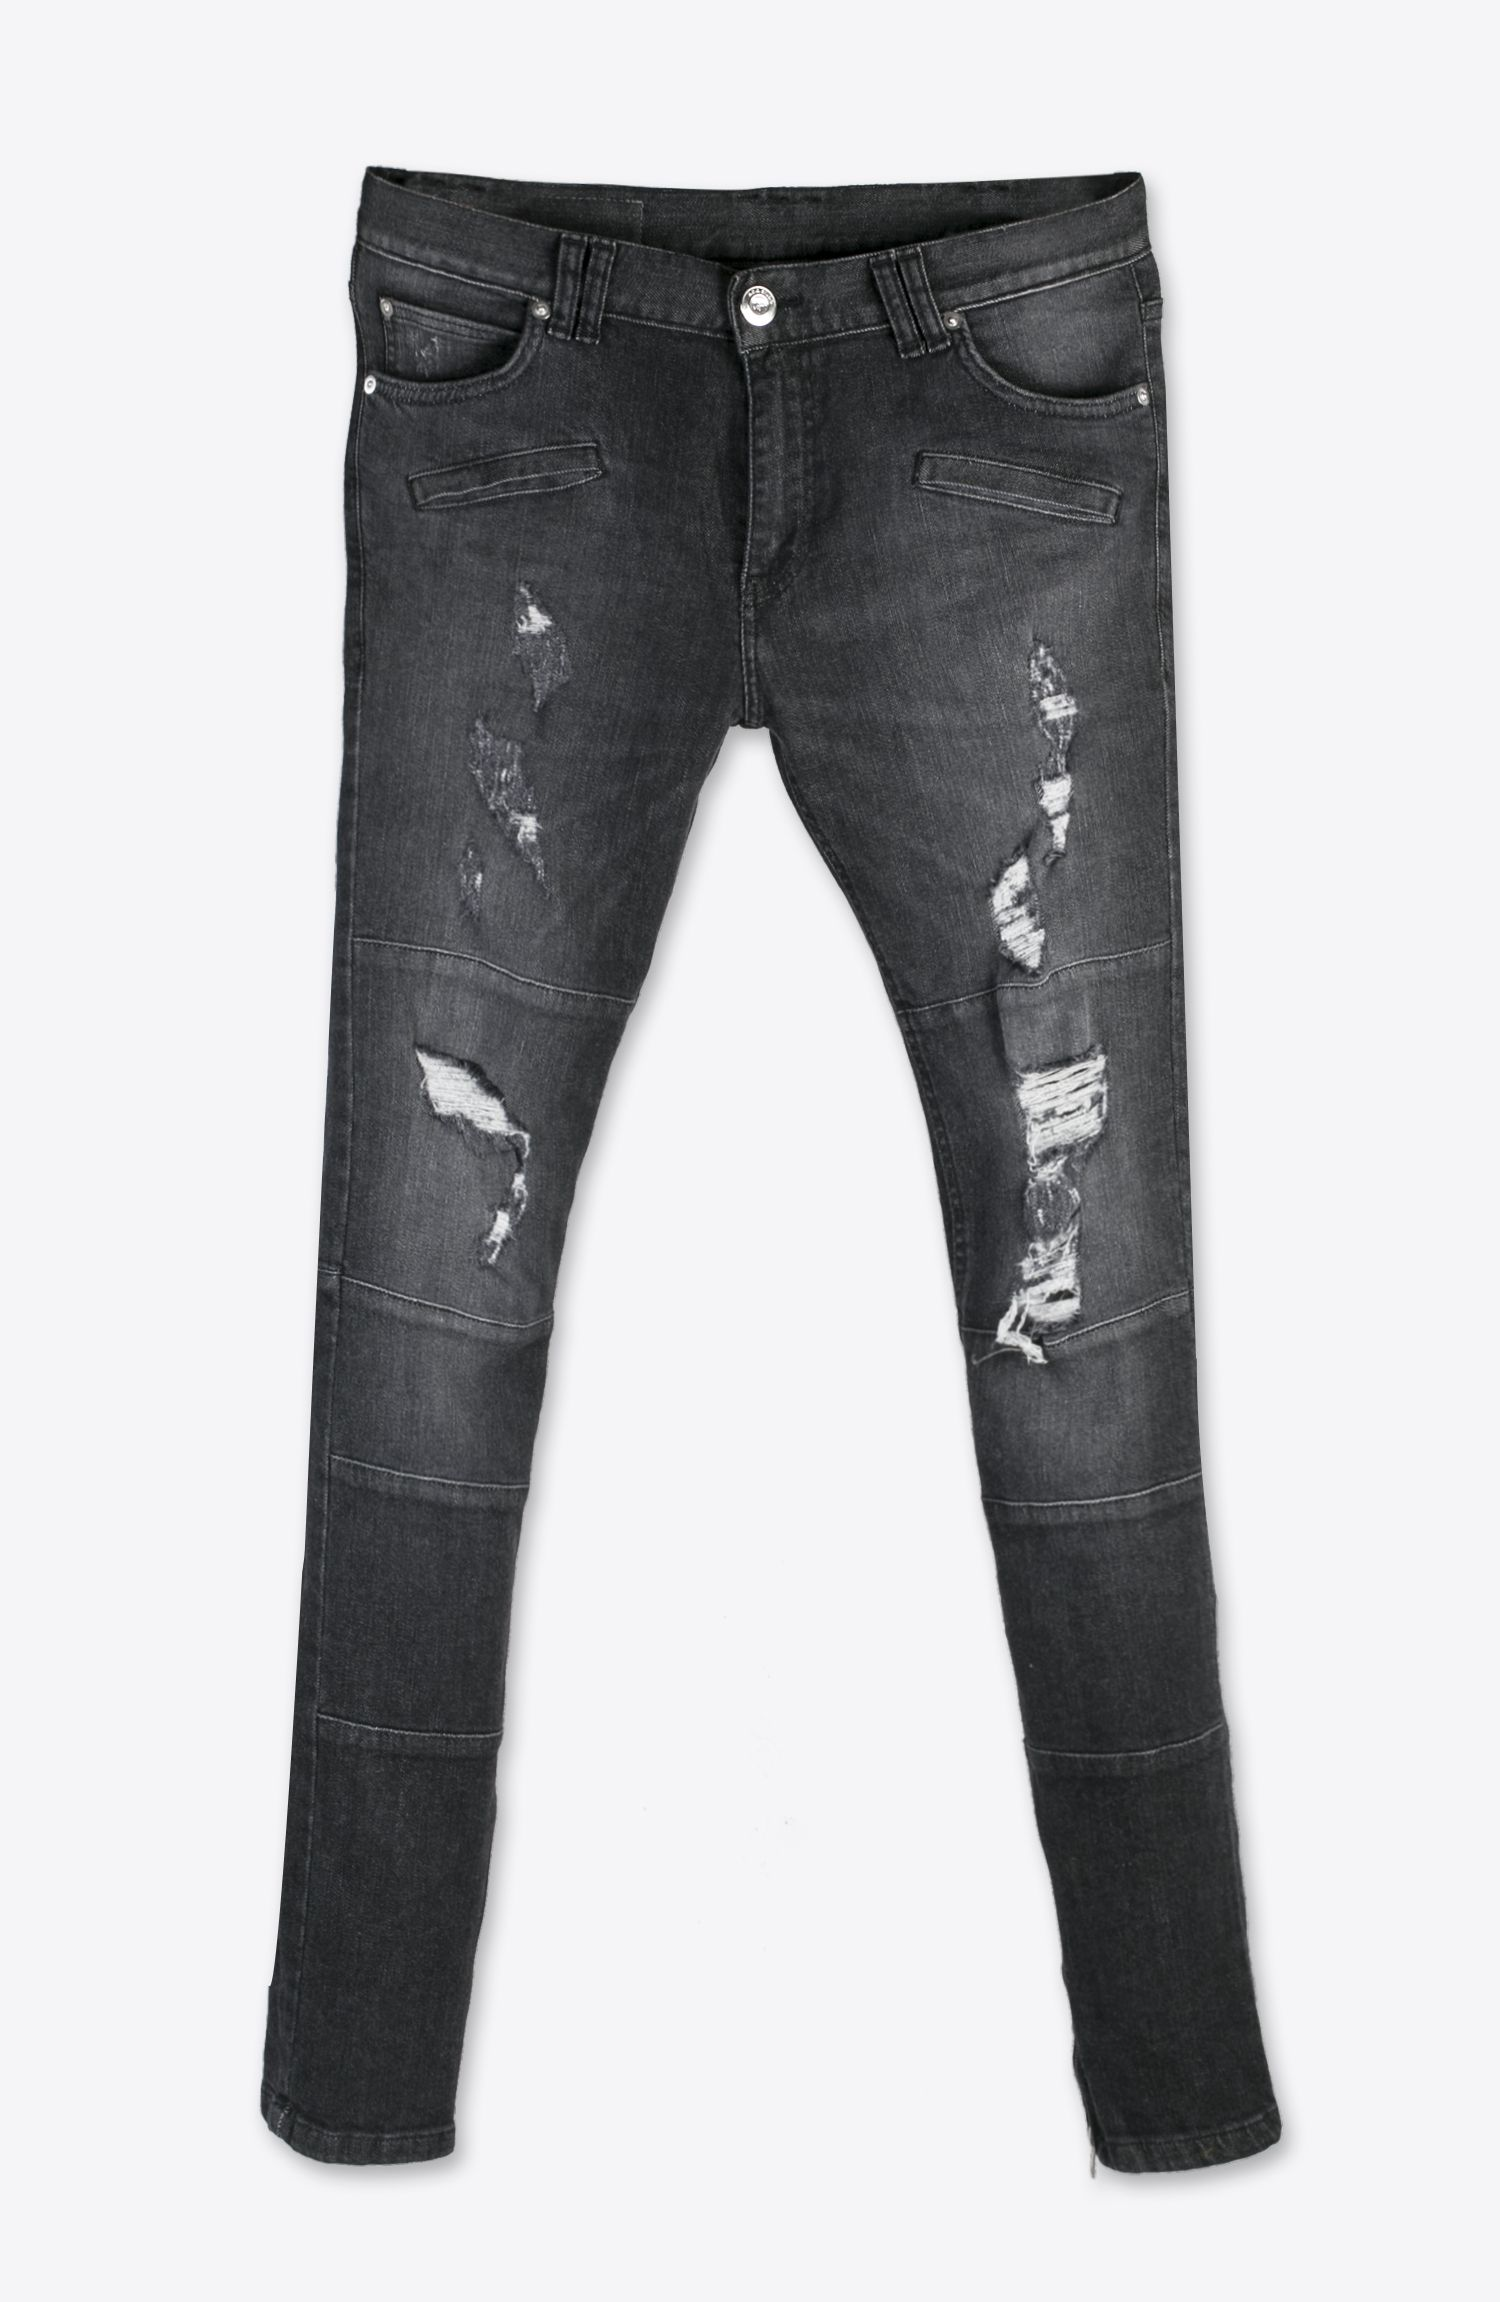 RIPPED DARK GREY BIKER SKINNY JEANS | denim | Pinterest | Grey ...